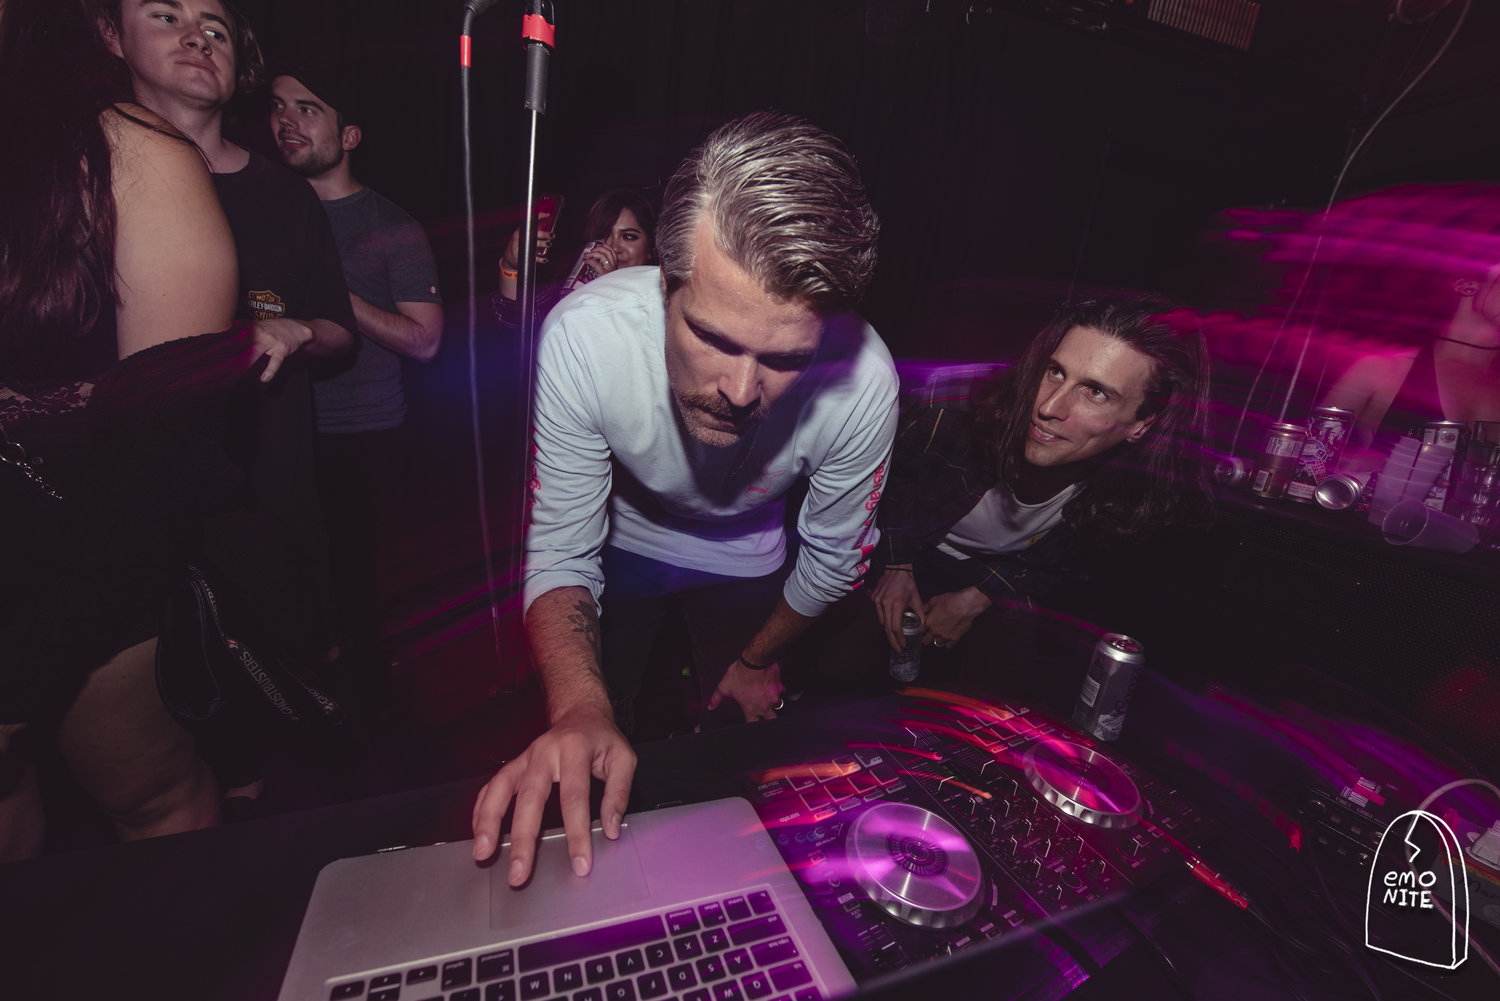 Emo Nite Brings the Party Back to the 3OH!3